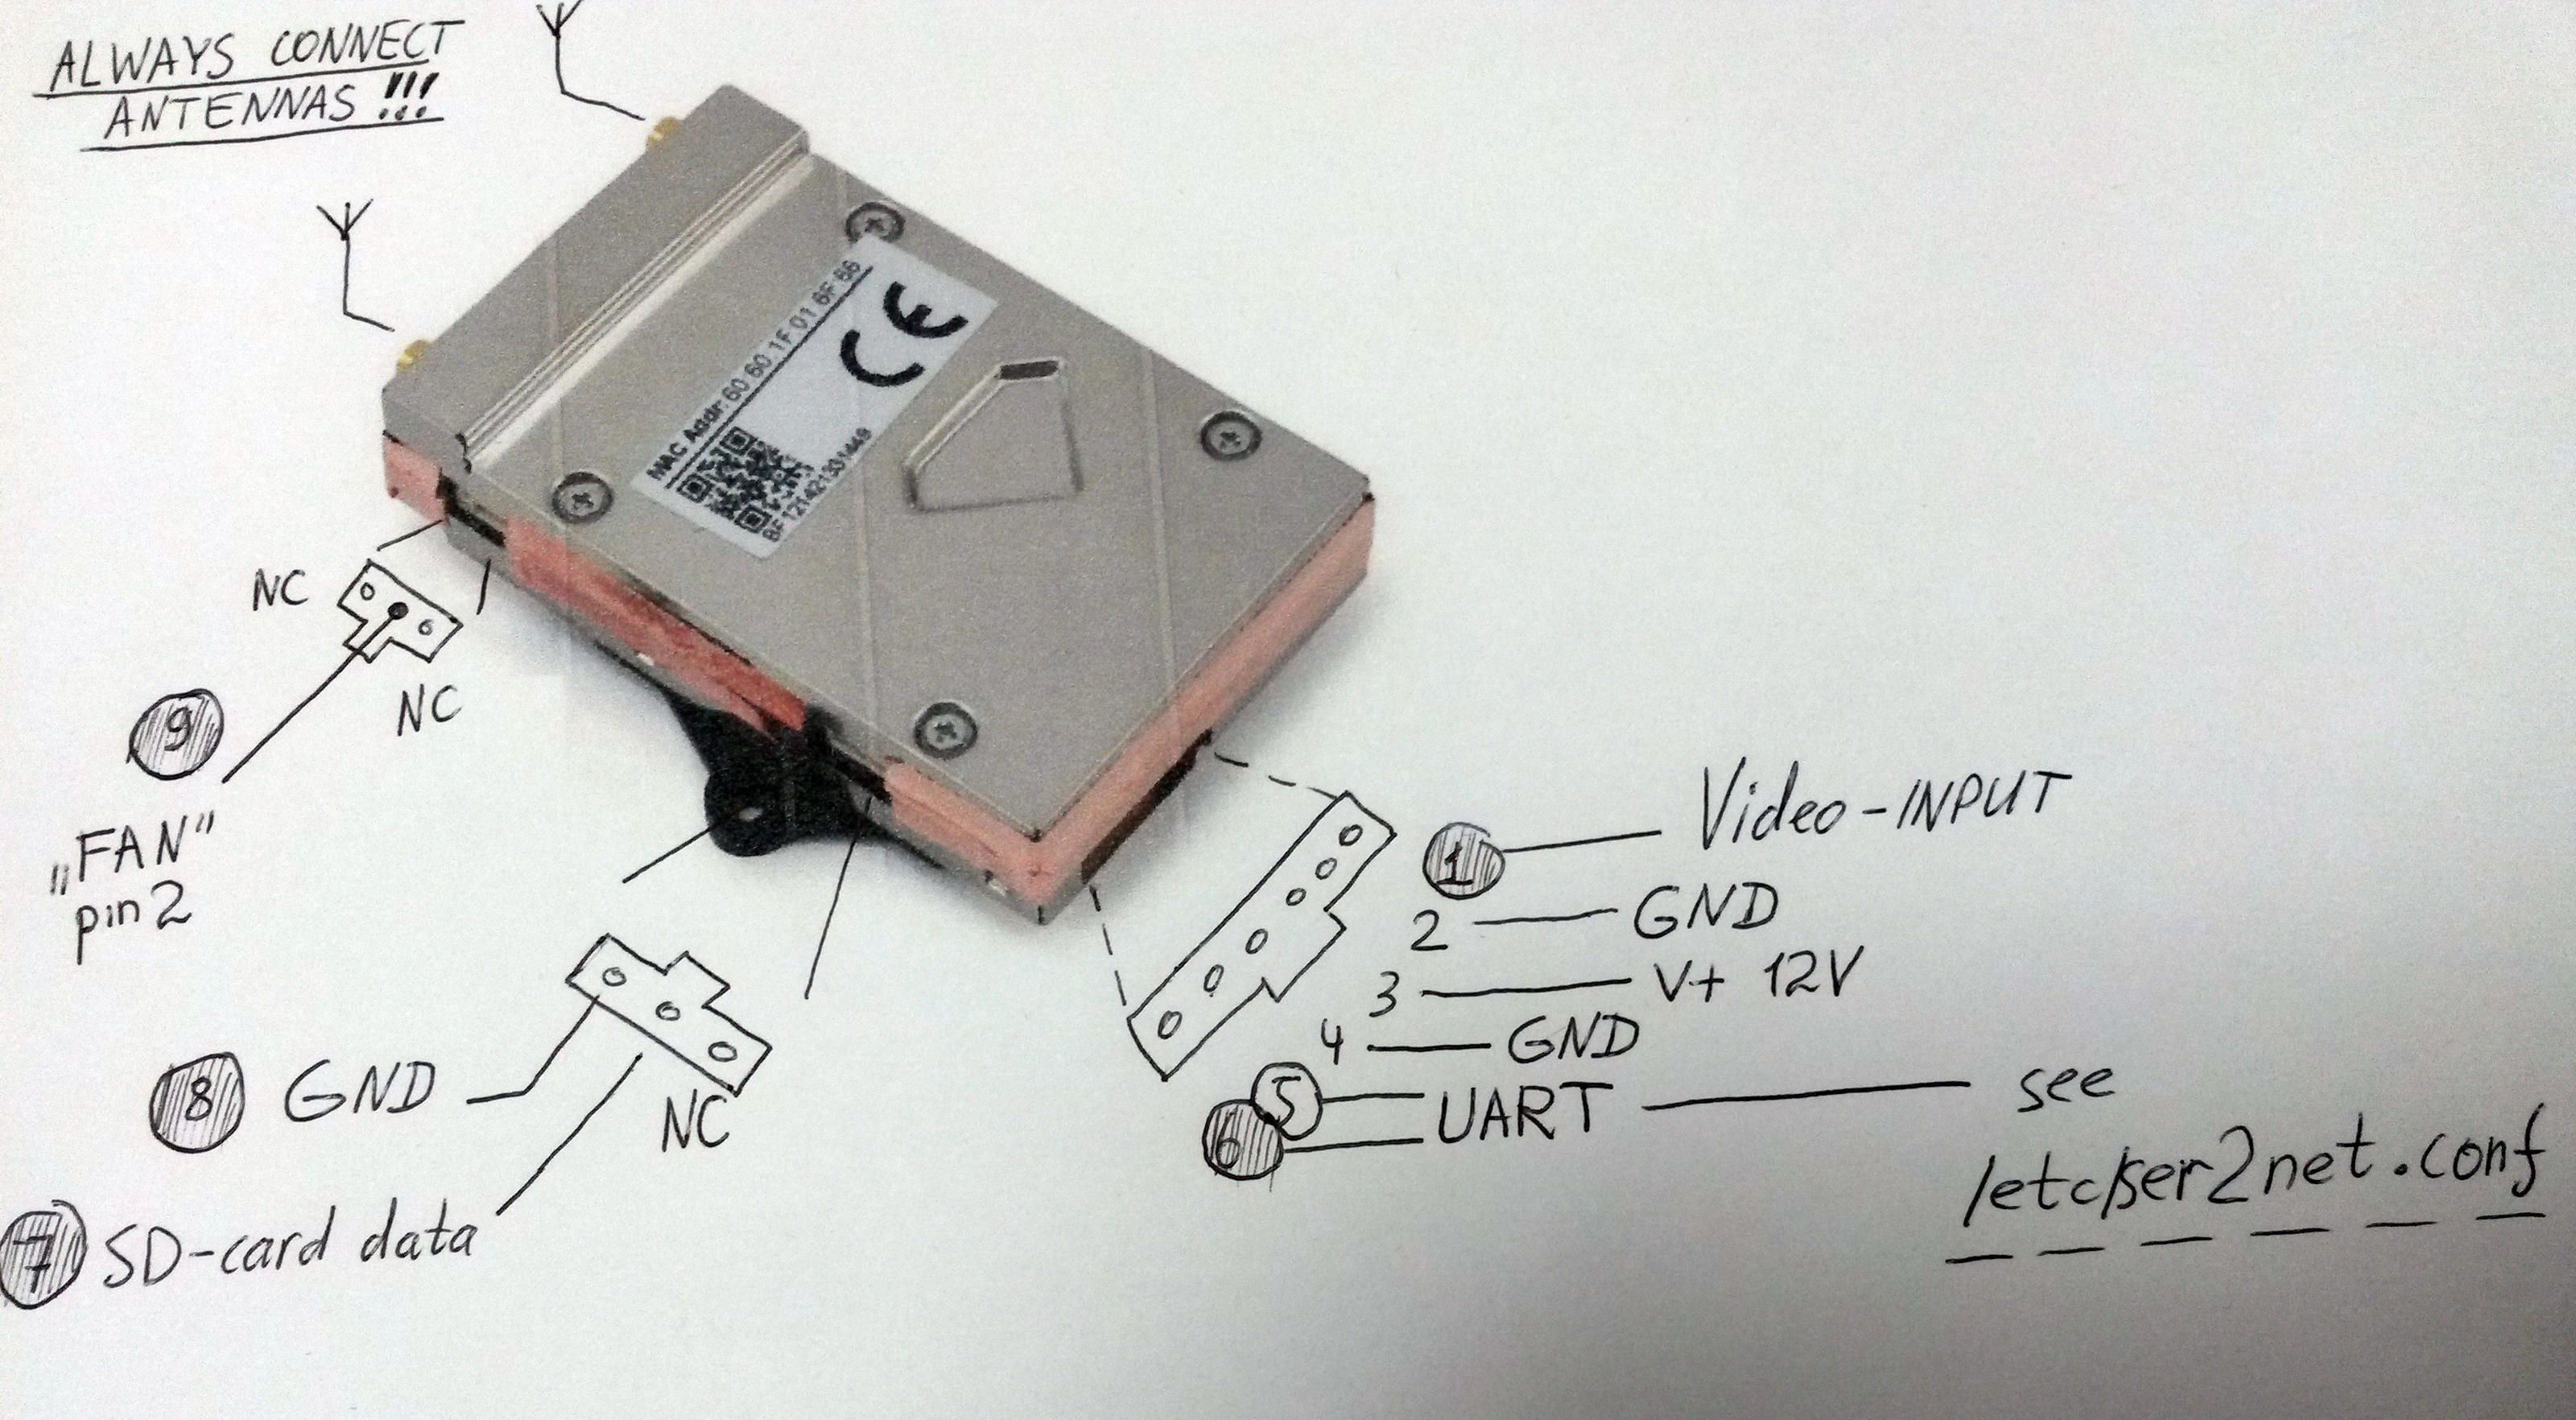 naza mv2 wiring diagram electrical wiring diagrams rc bec wiring on phantom 2 naza v2 wiring diagram block and schematic diagrams \\u2022 4 way switch wiring diagram naza mv2 wiring diagram